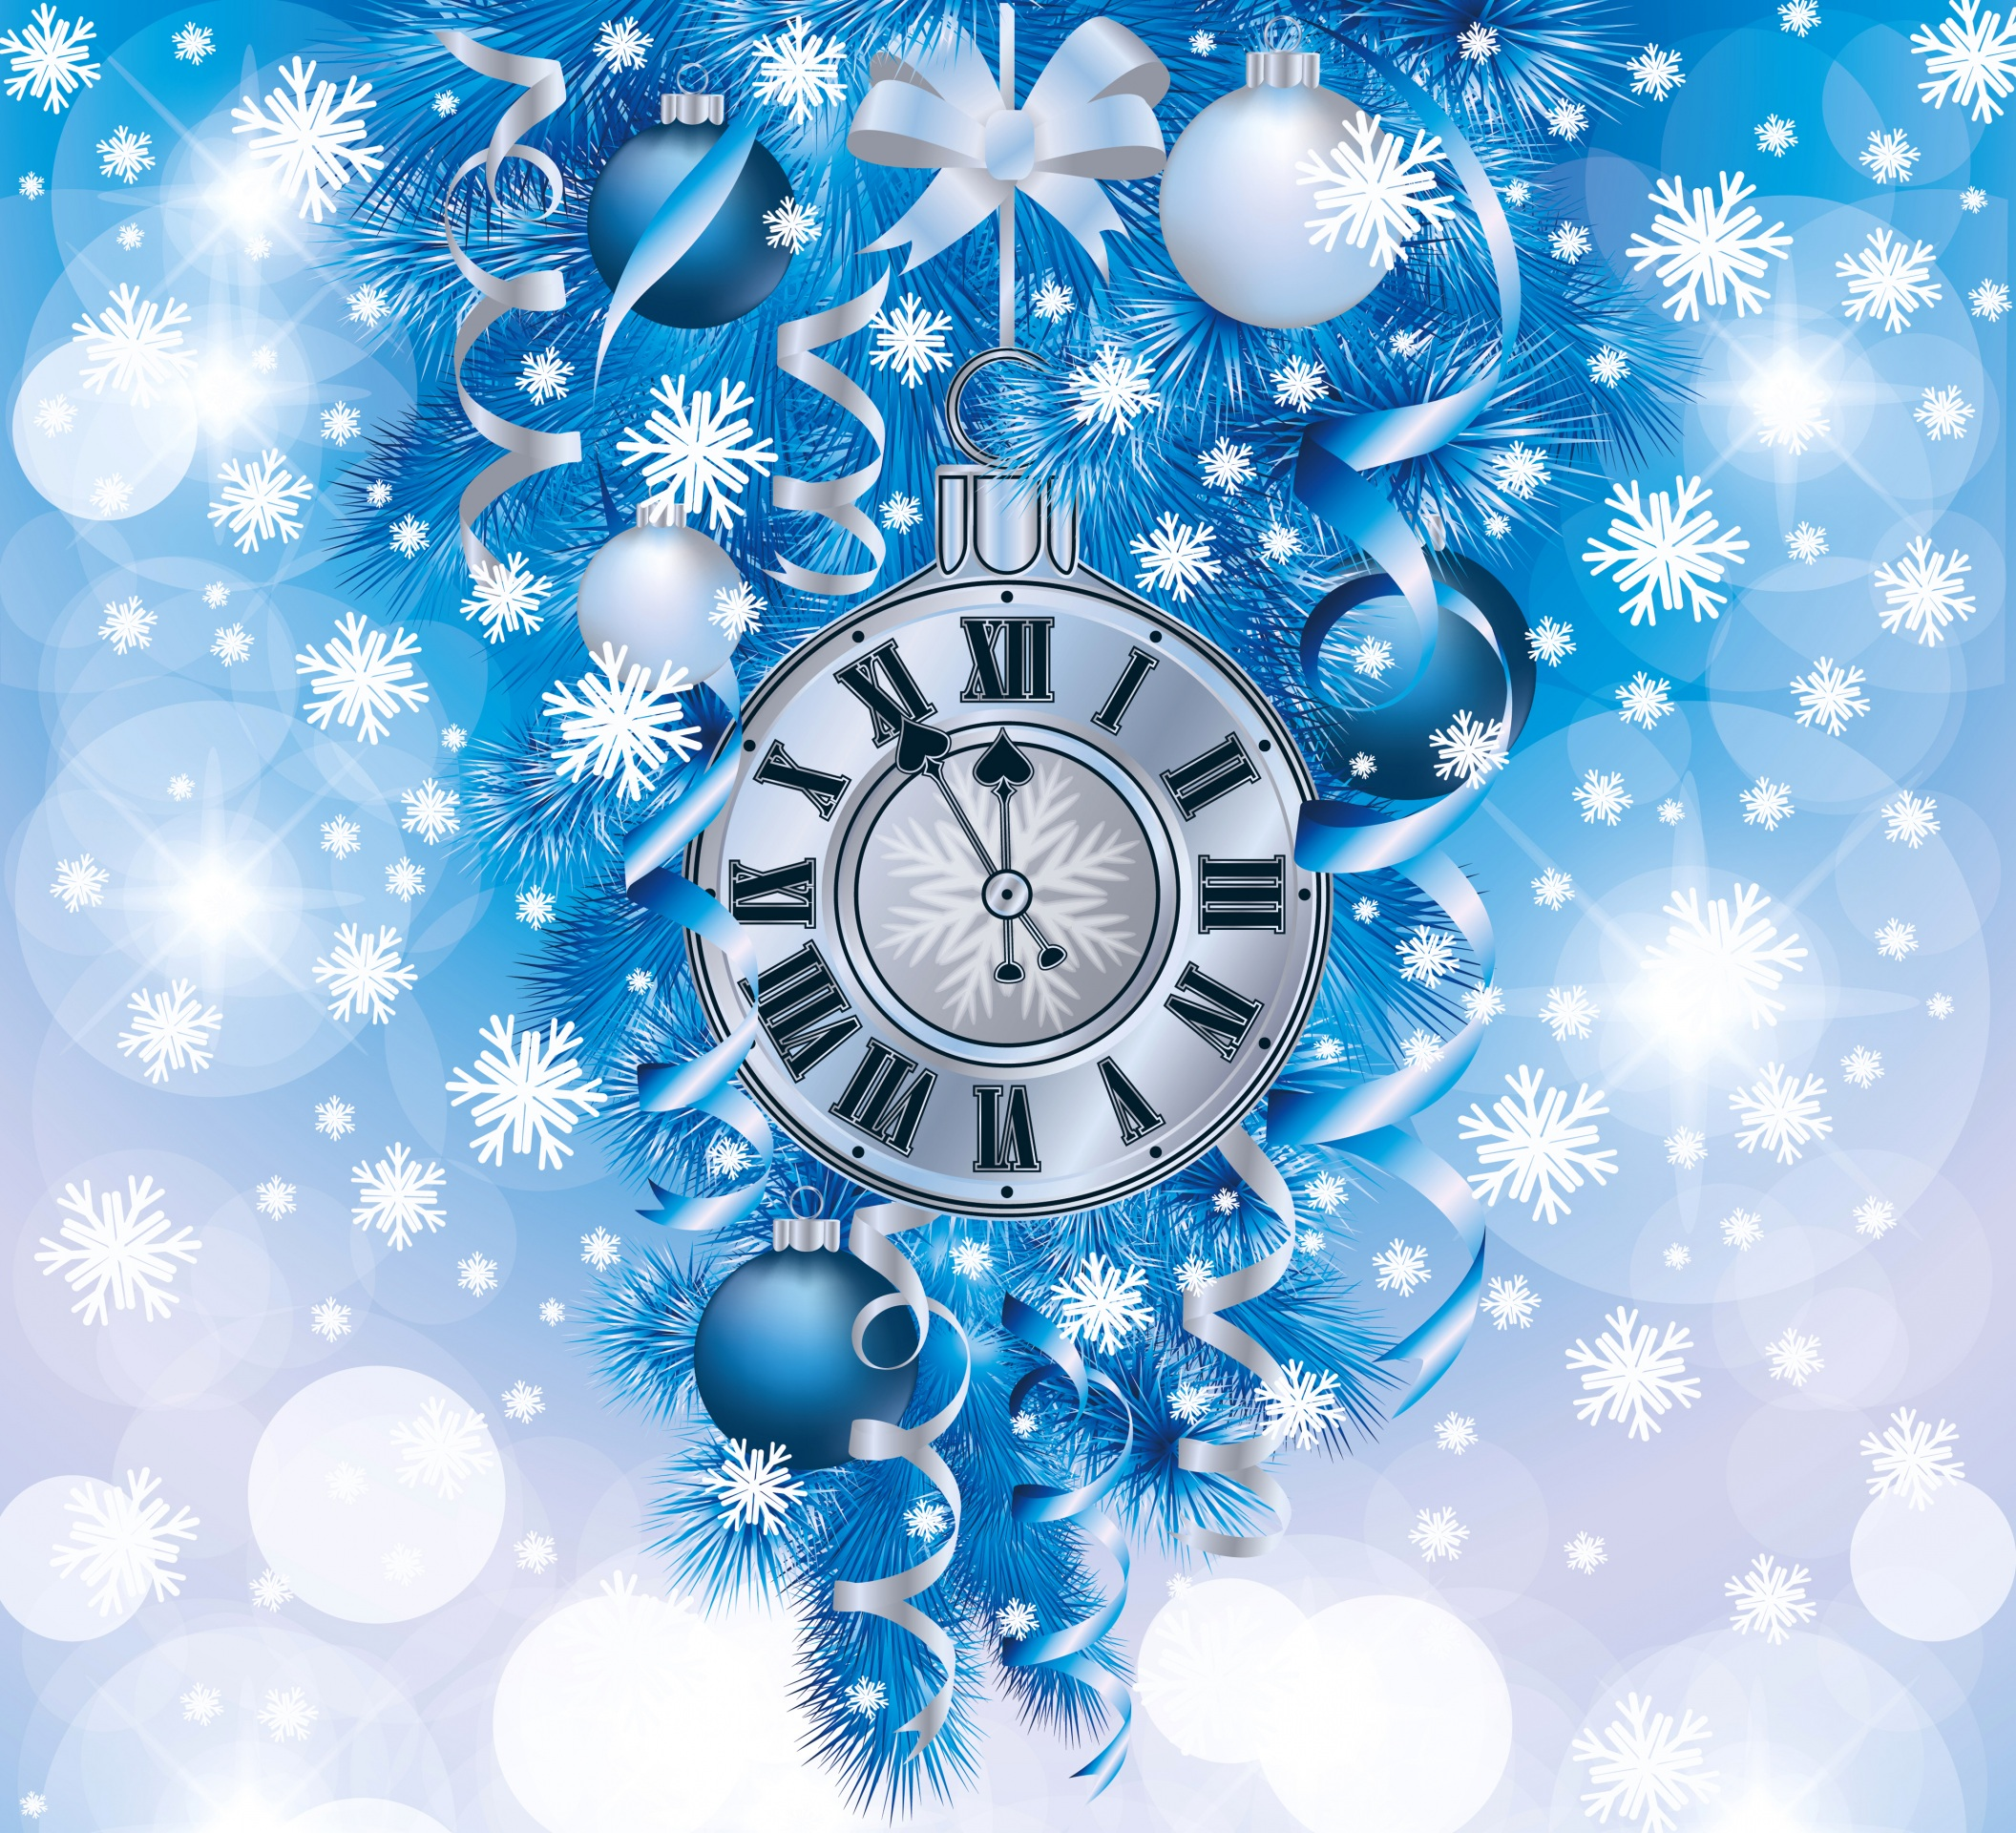 Live 3d Wallpaper Snowing Countdown To New Year Fond D 233 Cran Hd Arri 232 Re Plan